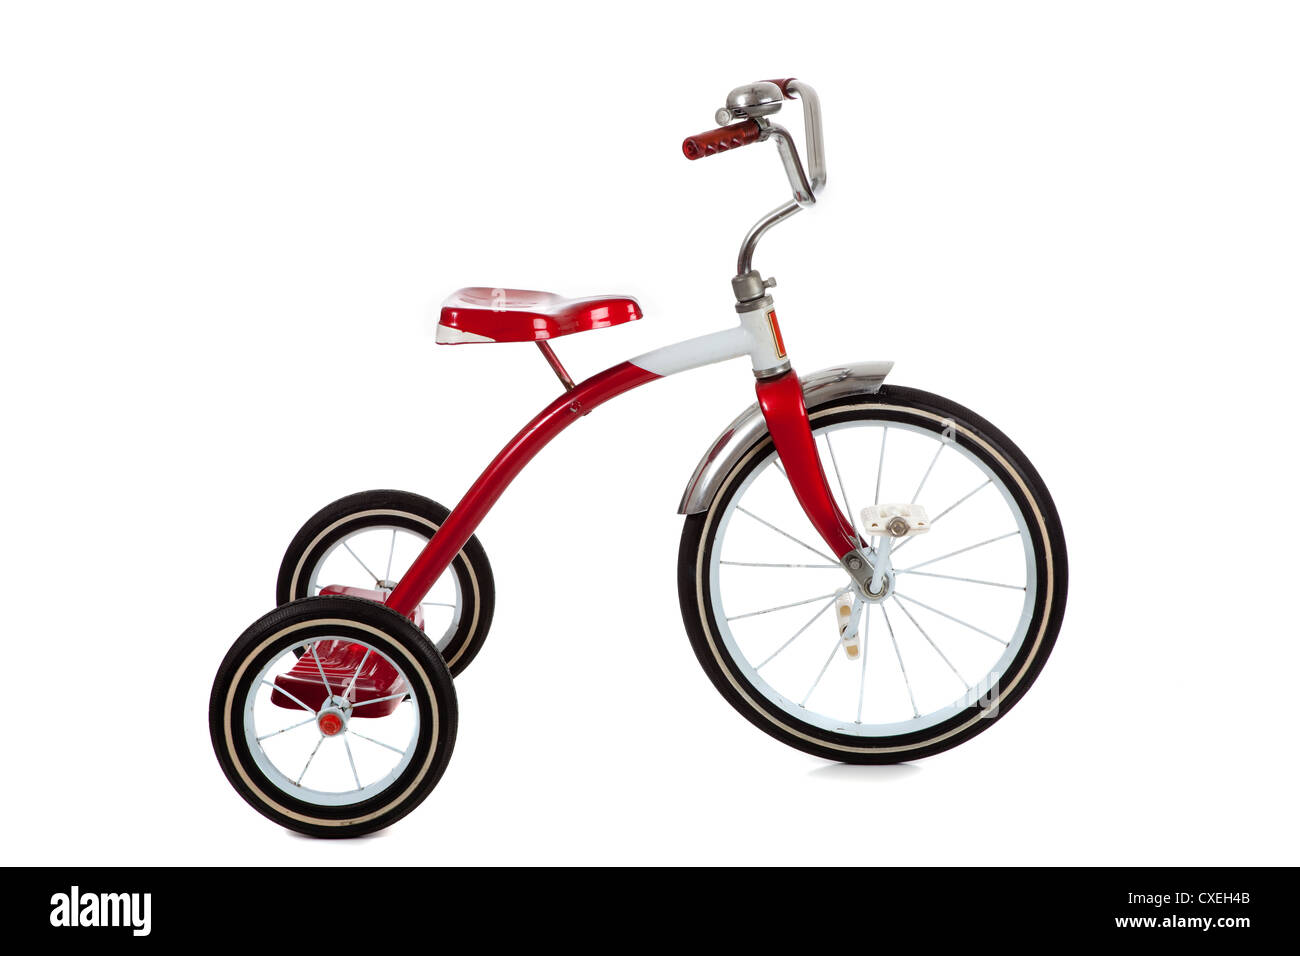 A child's vintage red tricycle on a white background - Stock Image